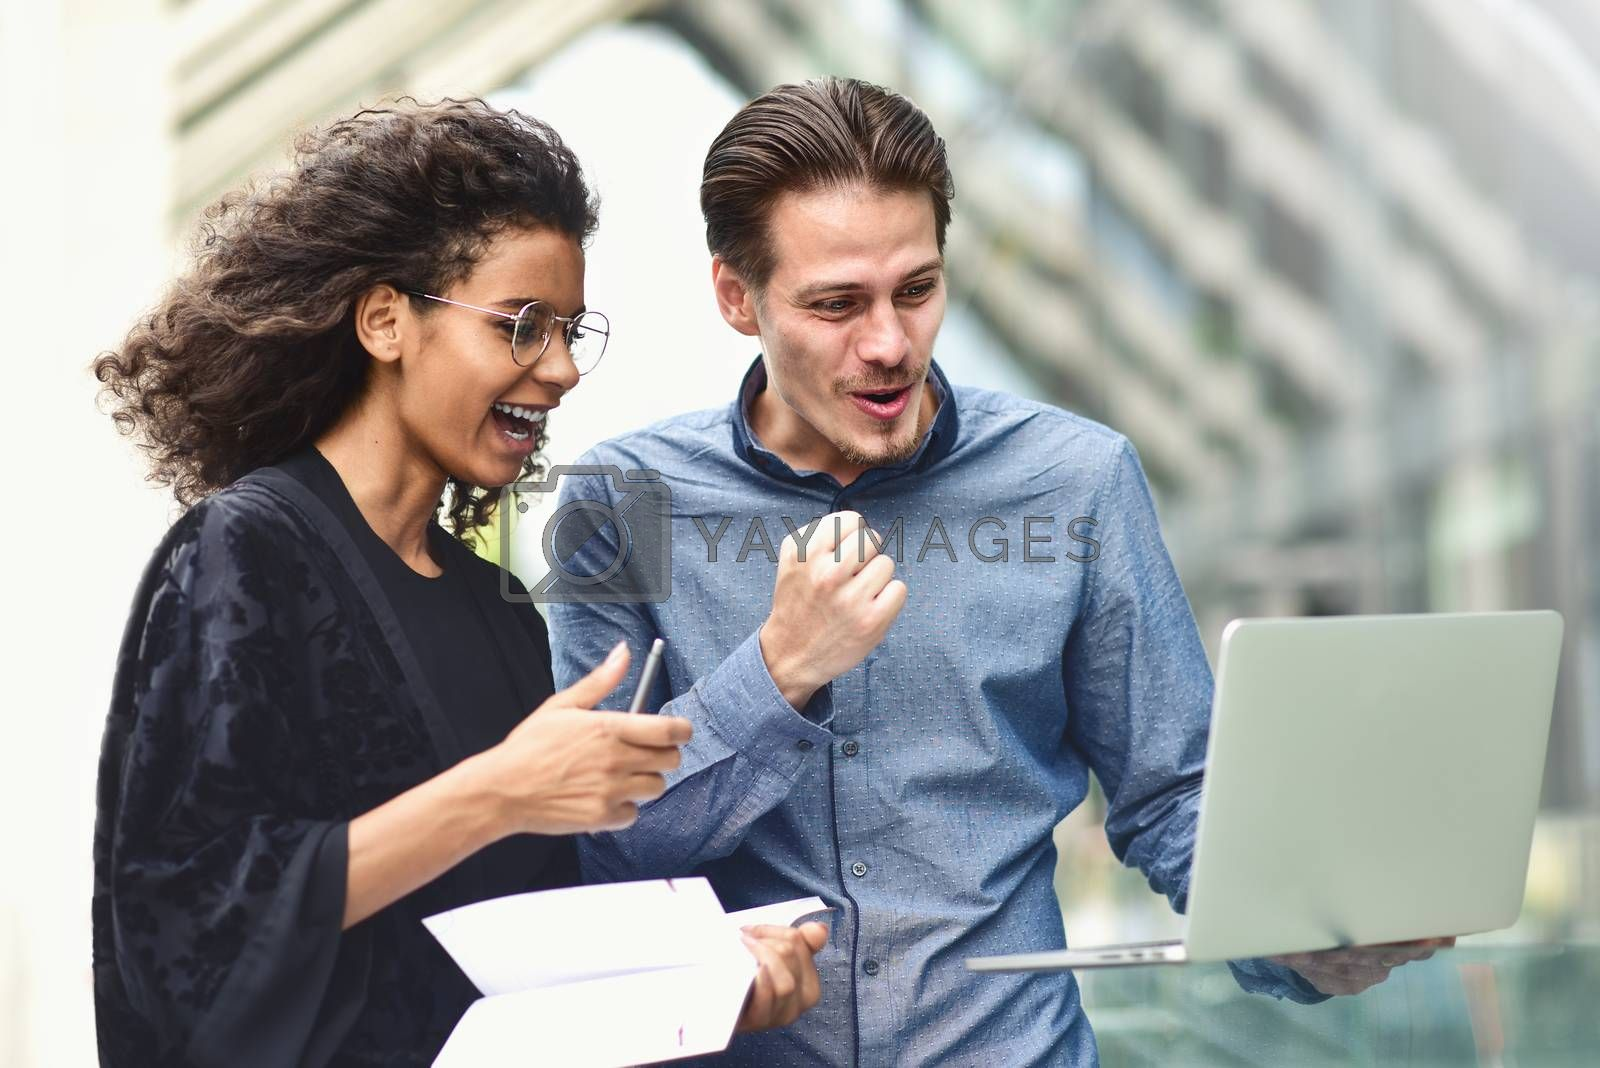 Business man and woman working on laptop together on building background in city outdoor feeling happy.